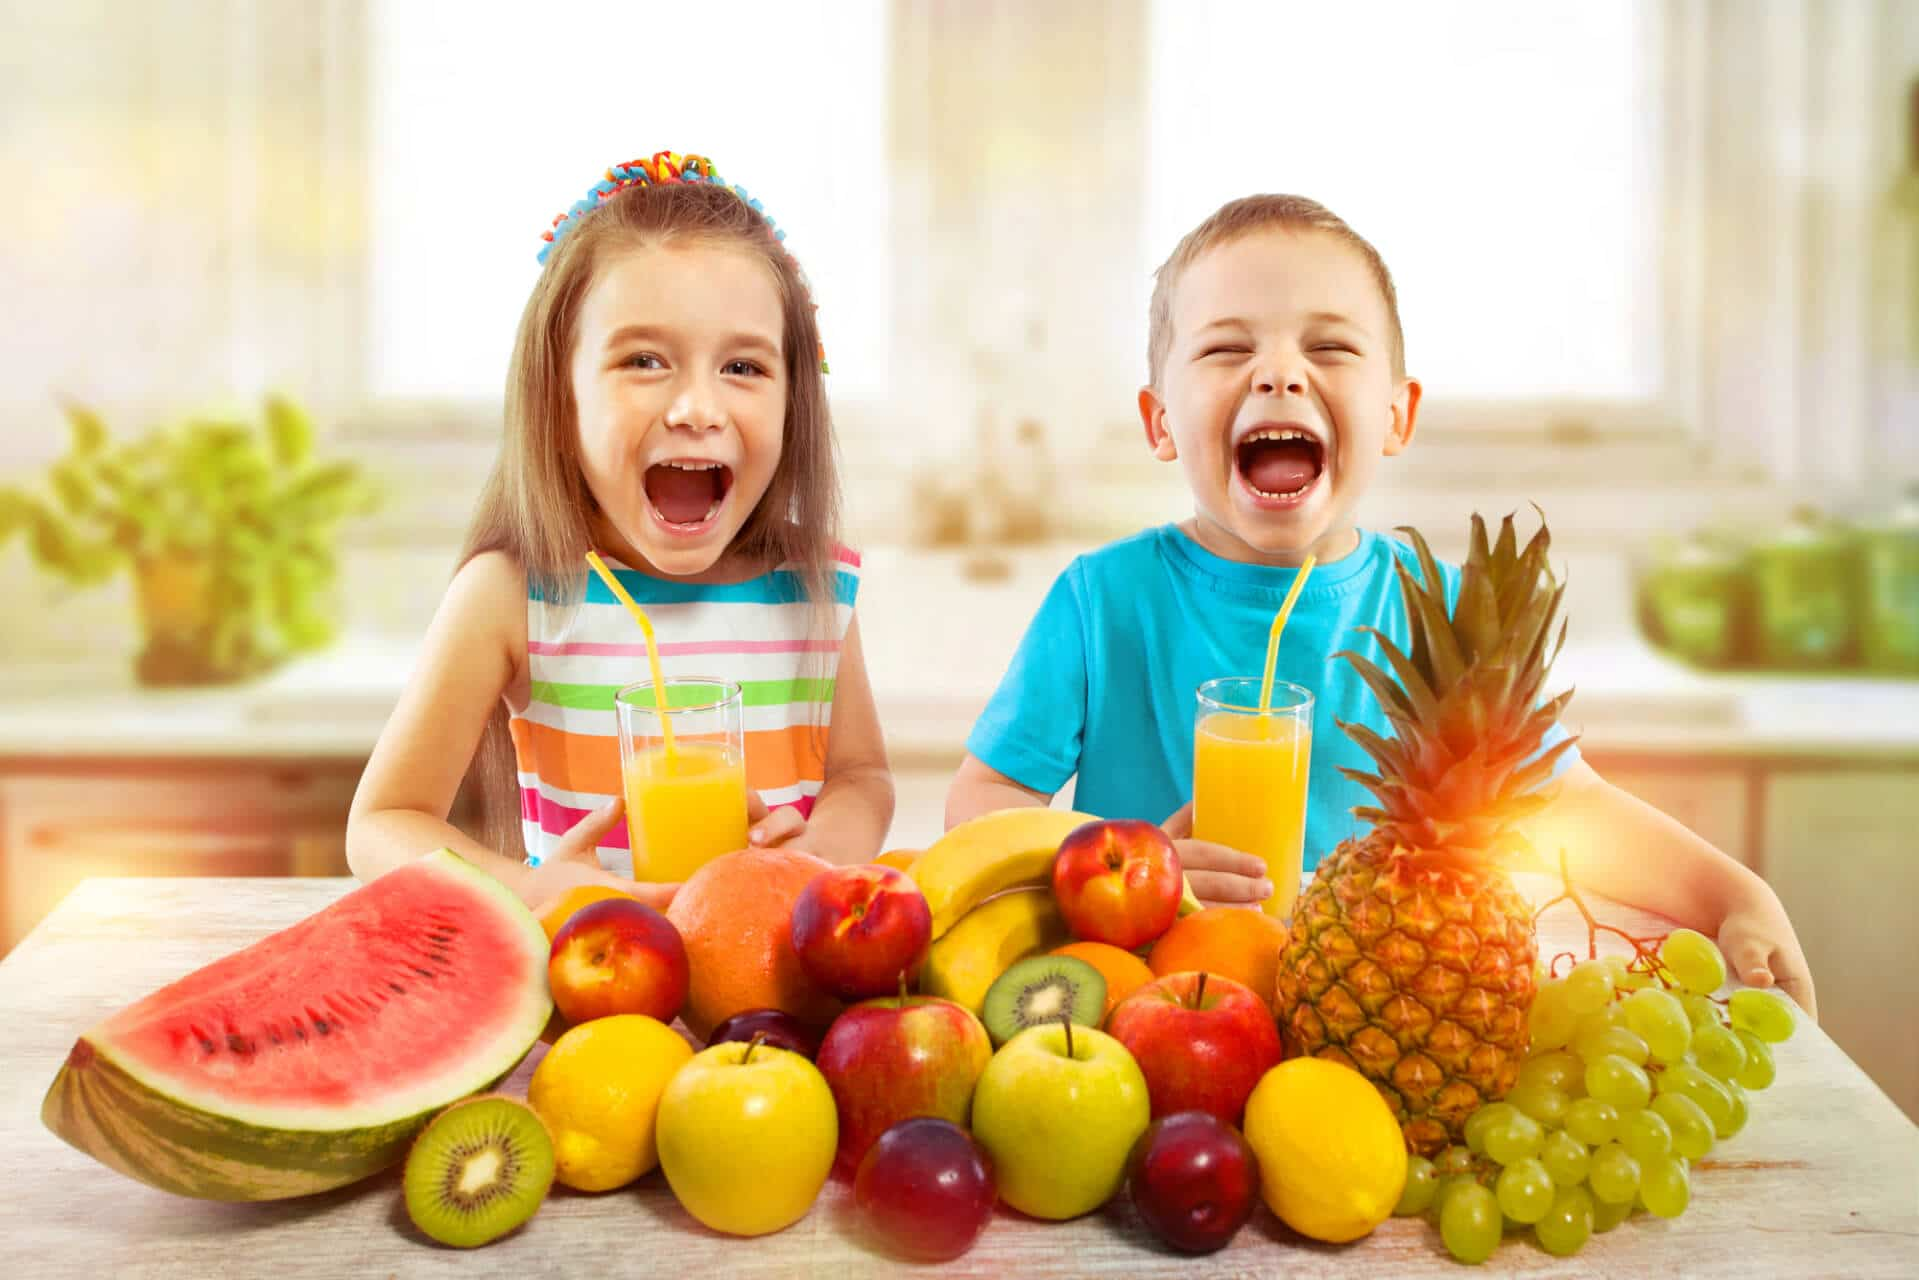 What foods does Palm Beach Pediatric Dentistry recommend for healthy teeth?